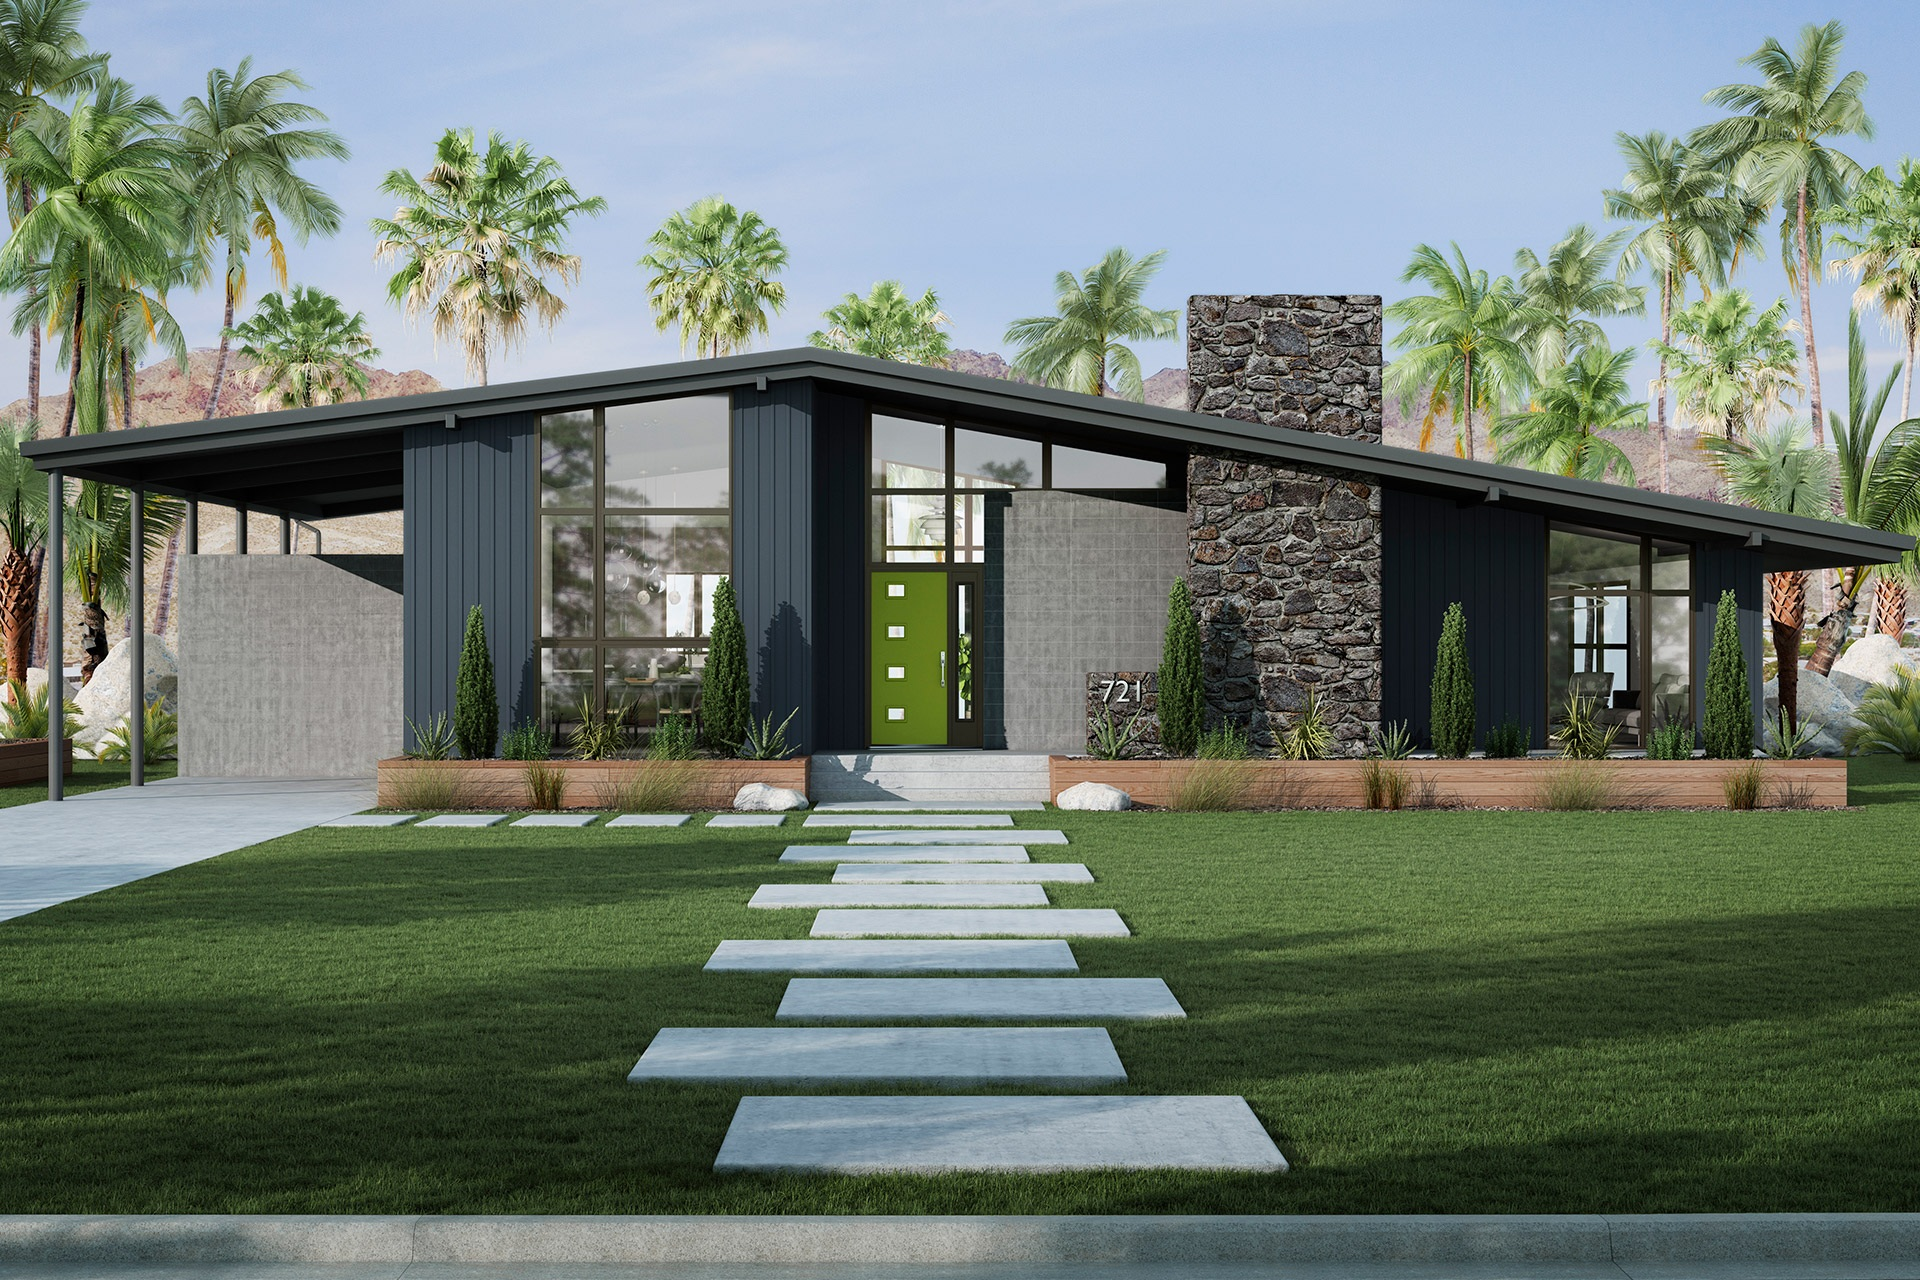 A mid-century modern home with exterior features that include large windows, a sloped roof, and a bright green door